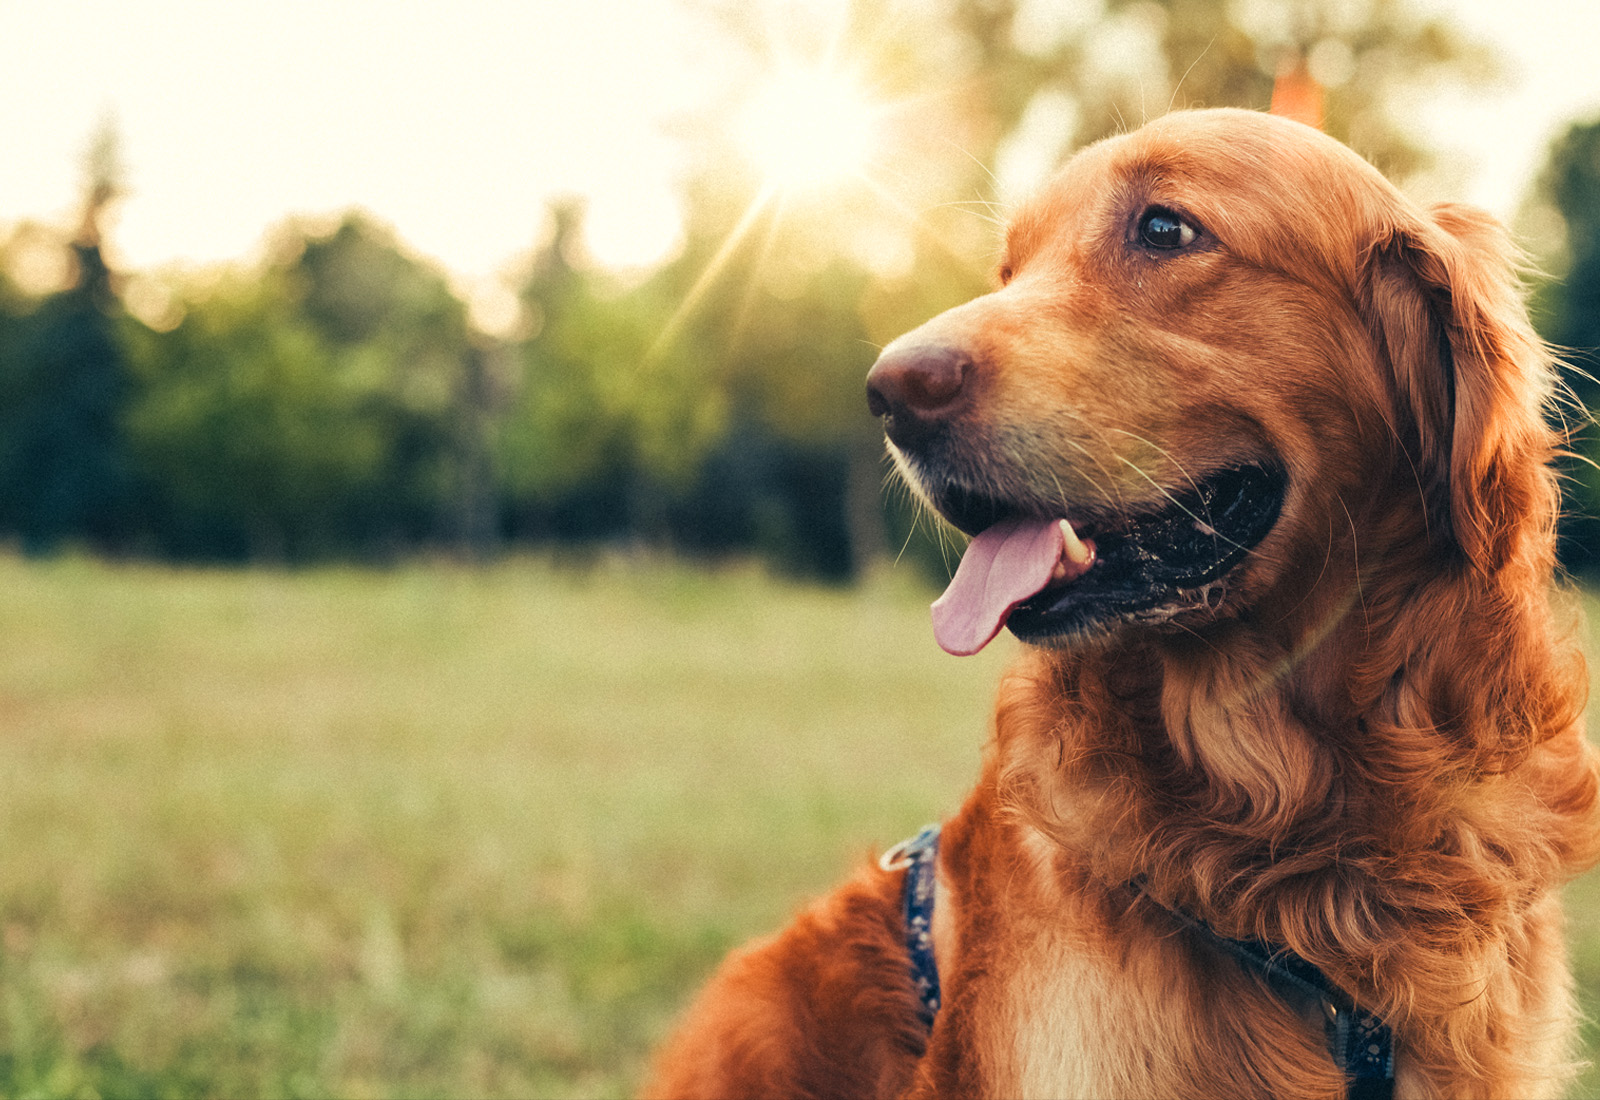 Can You Transform Your Pet Into a Service Dog?